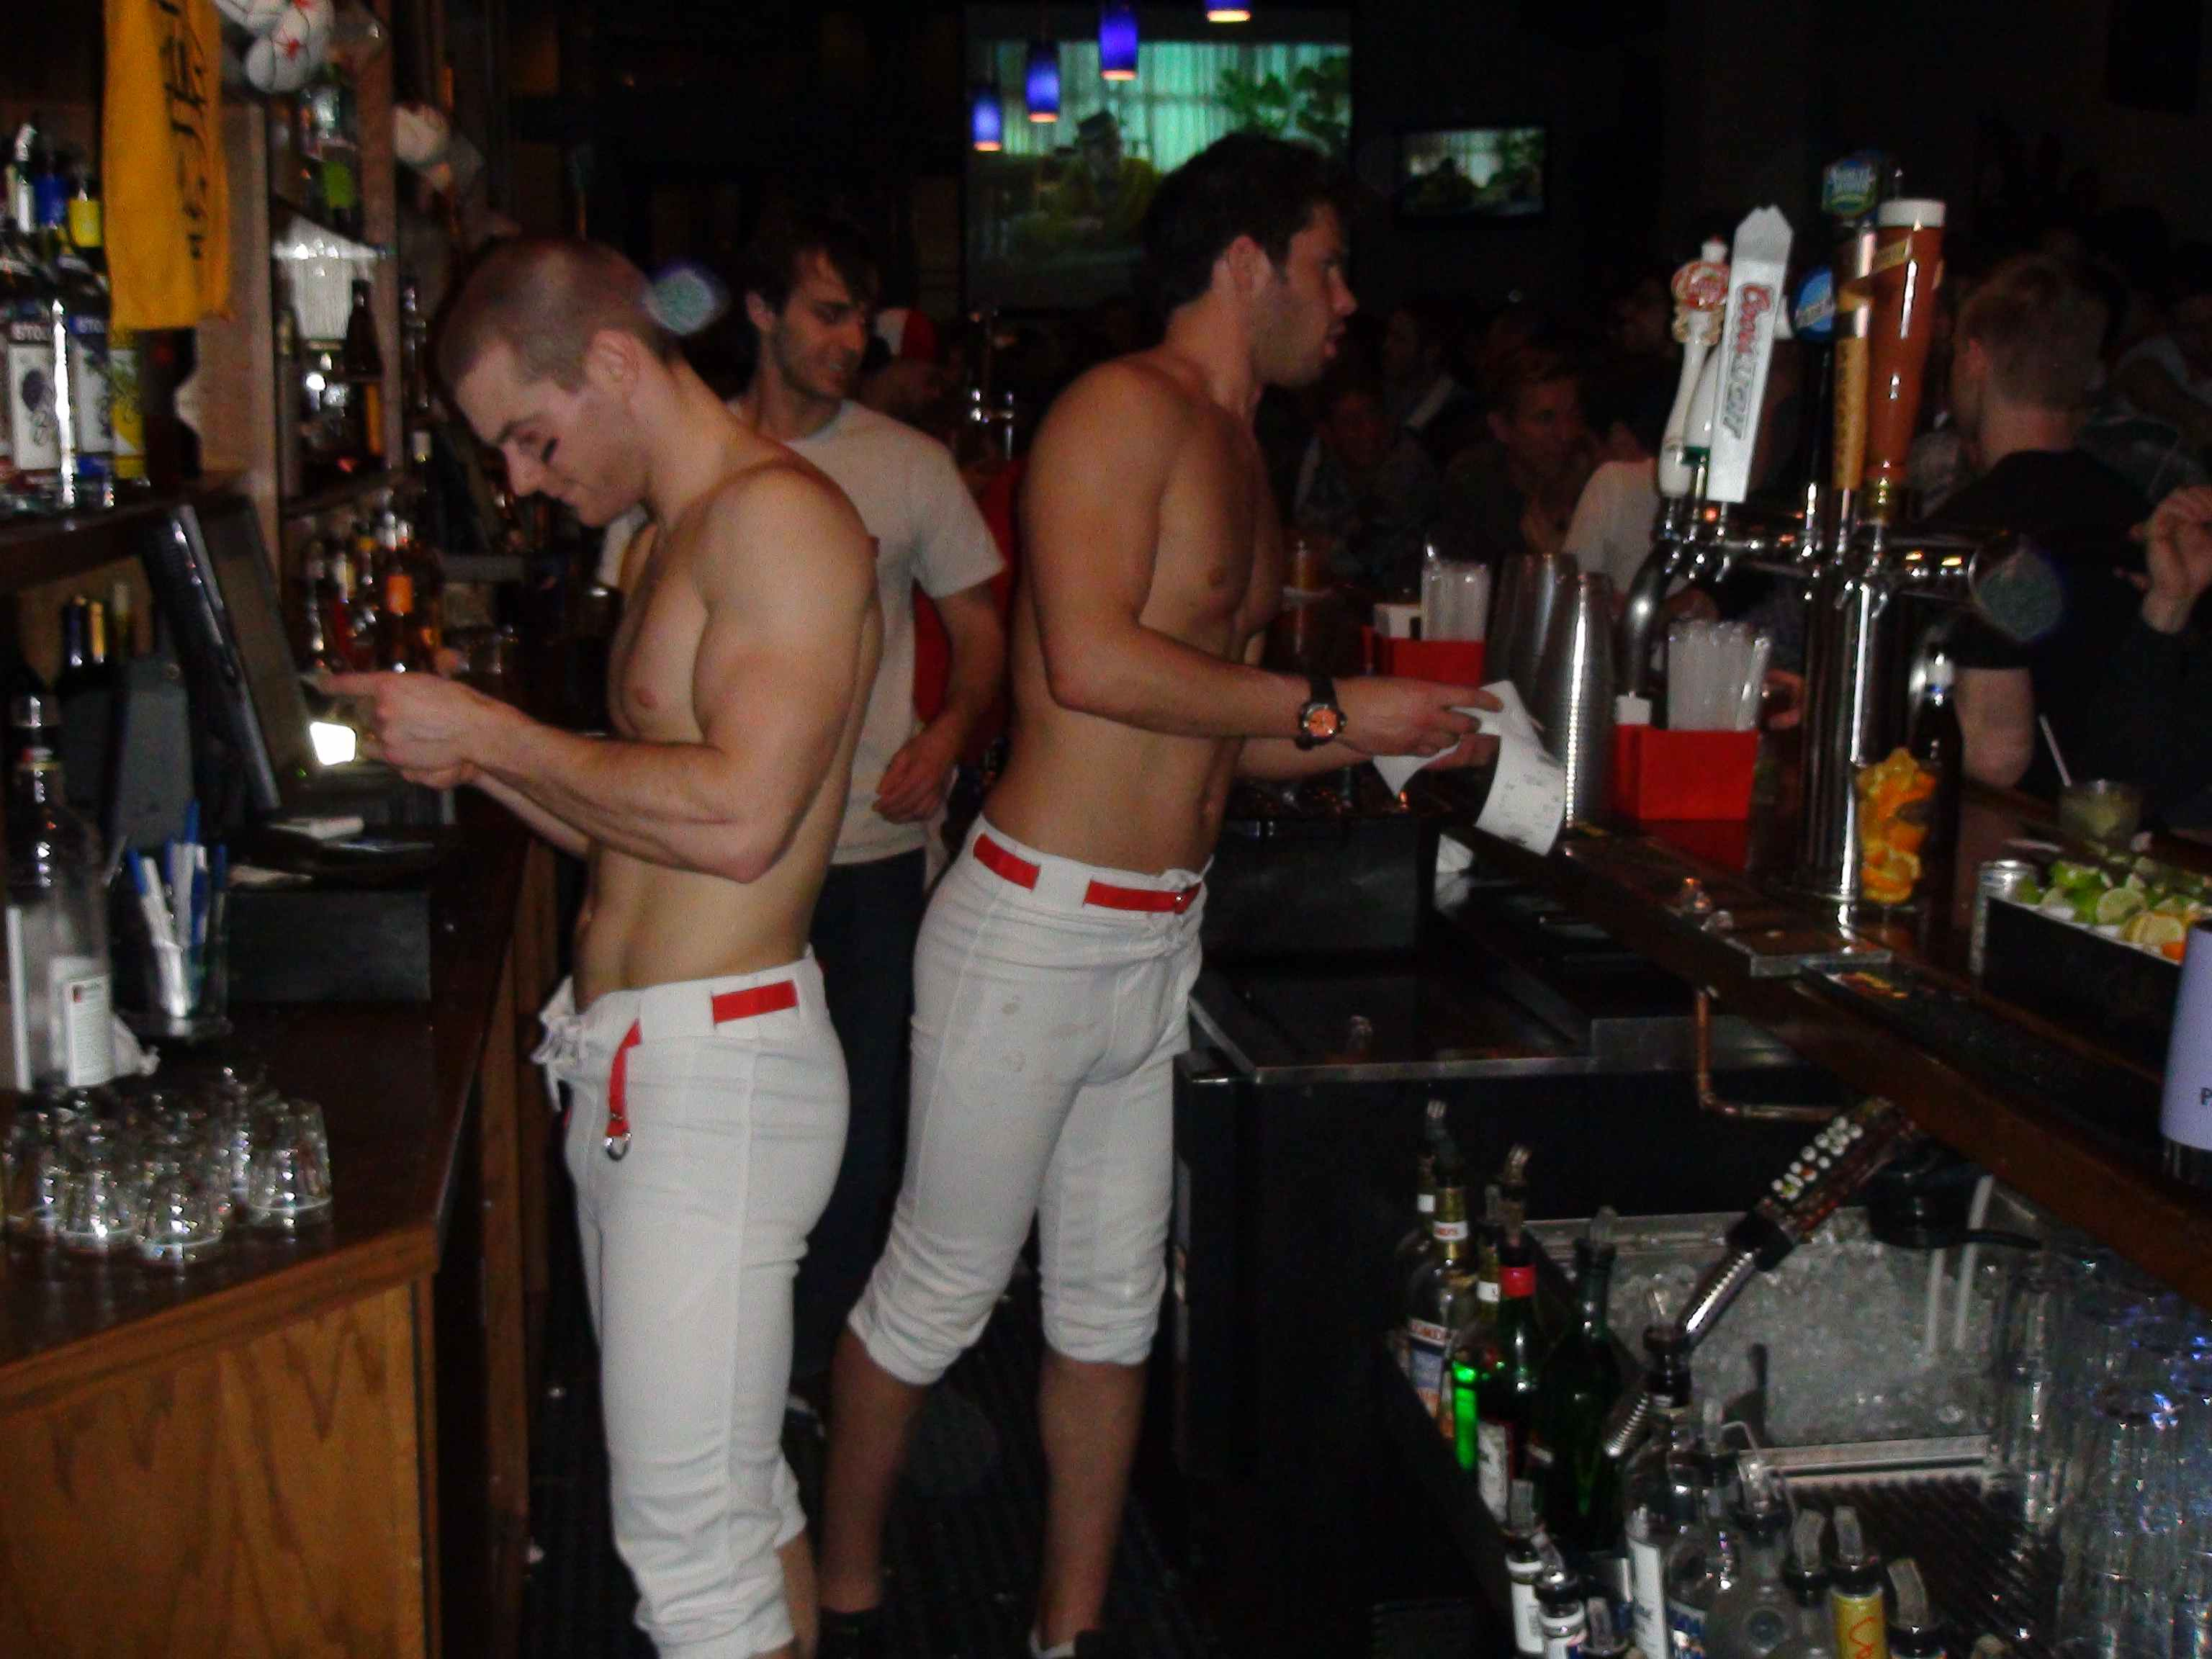 nyc gay hookup bars